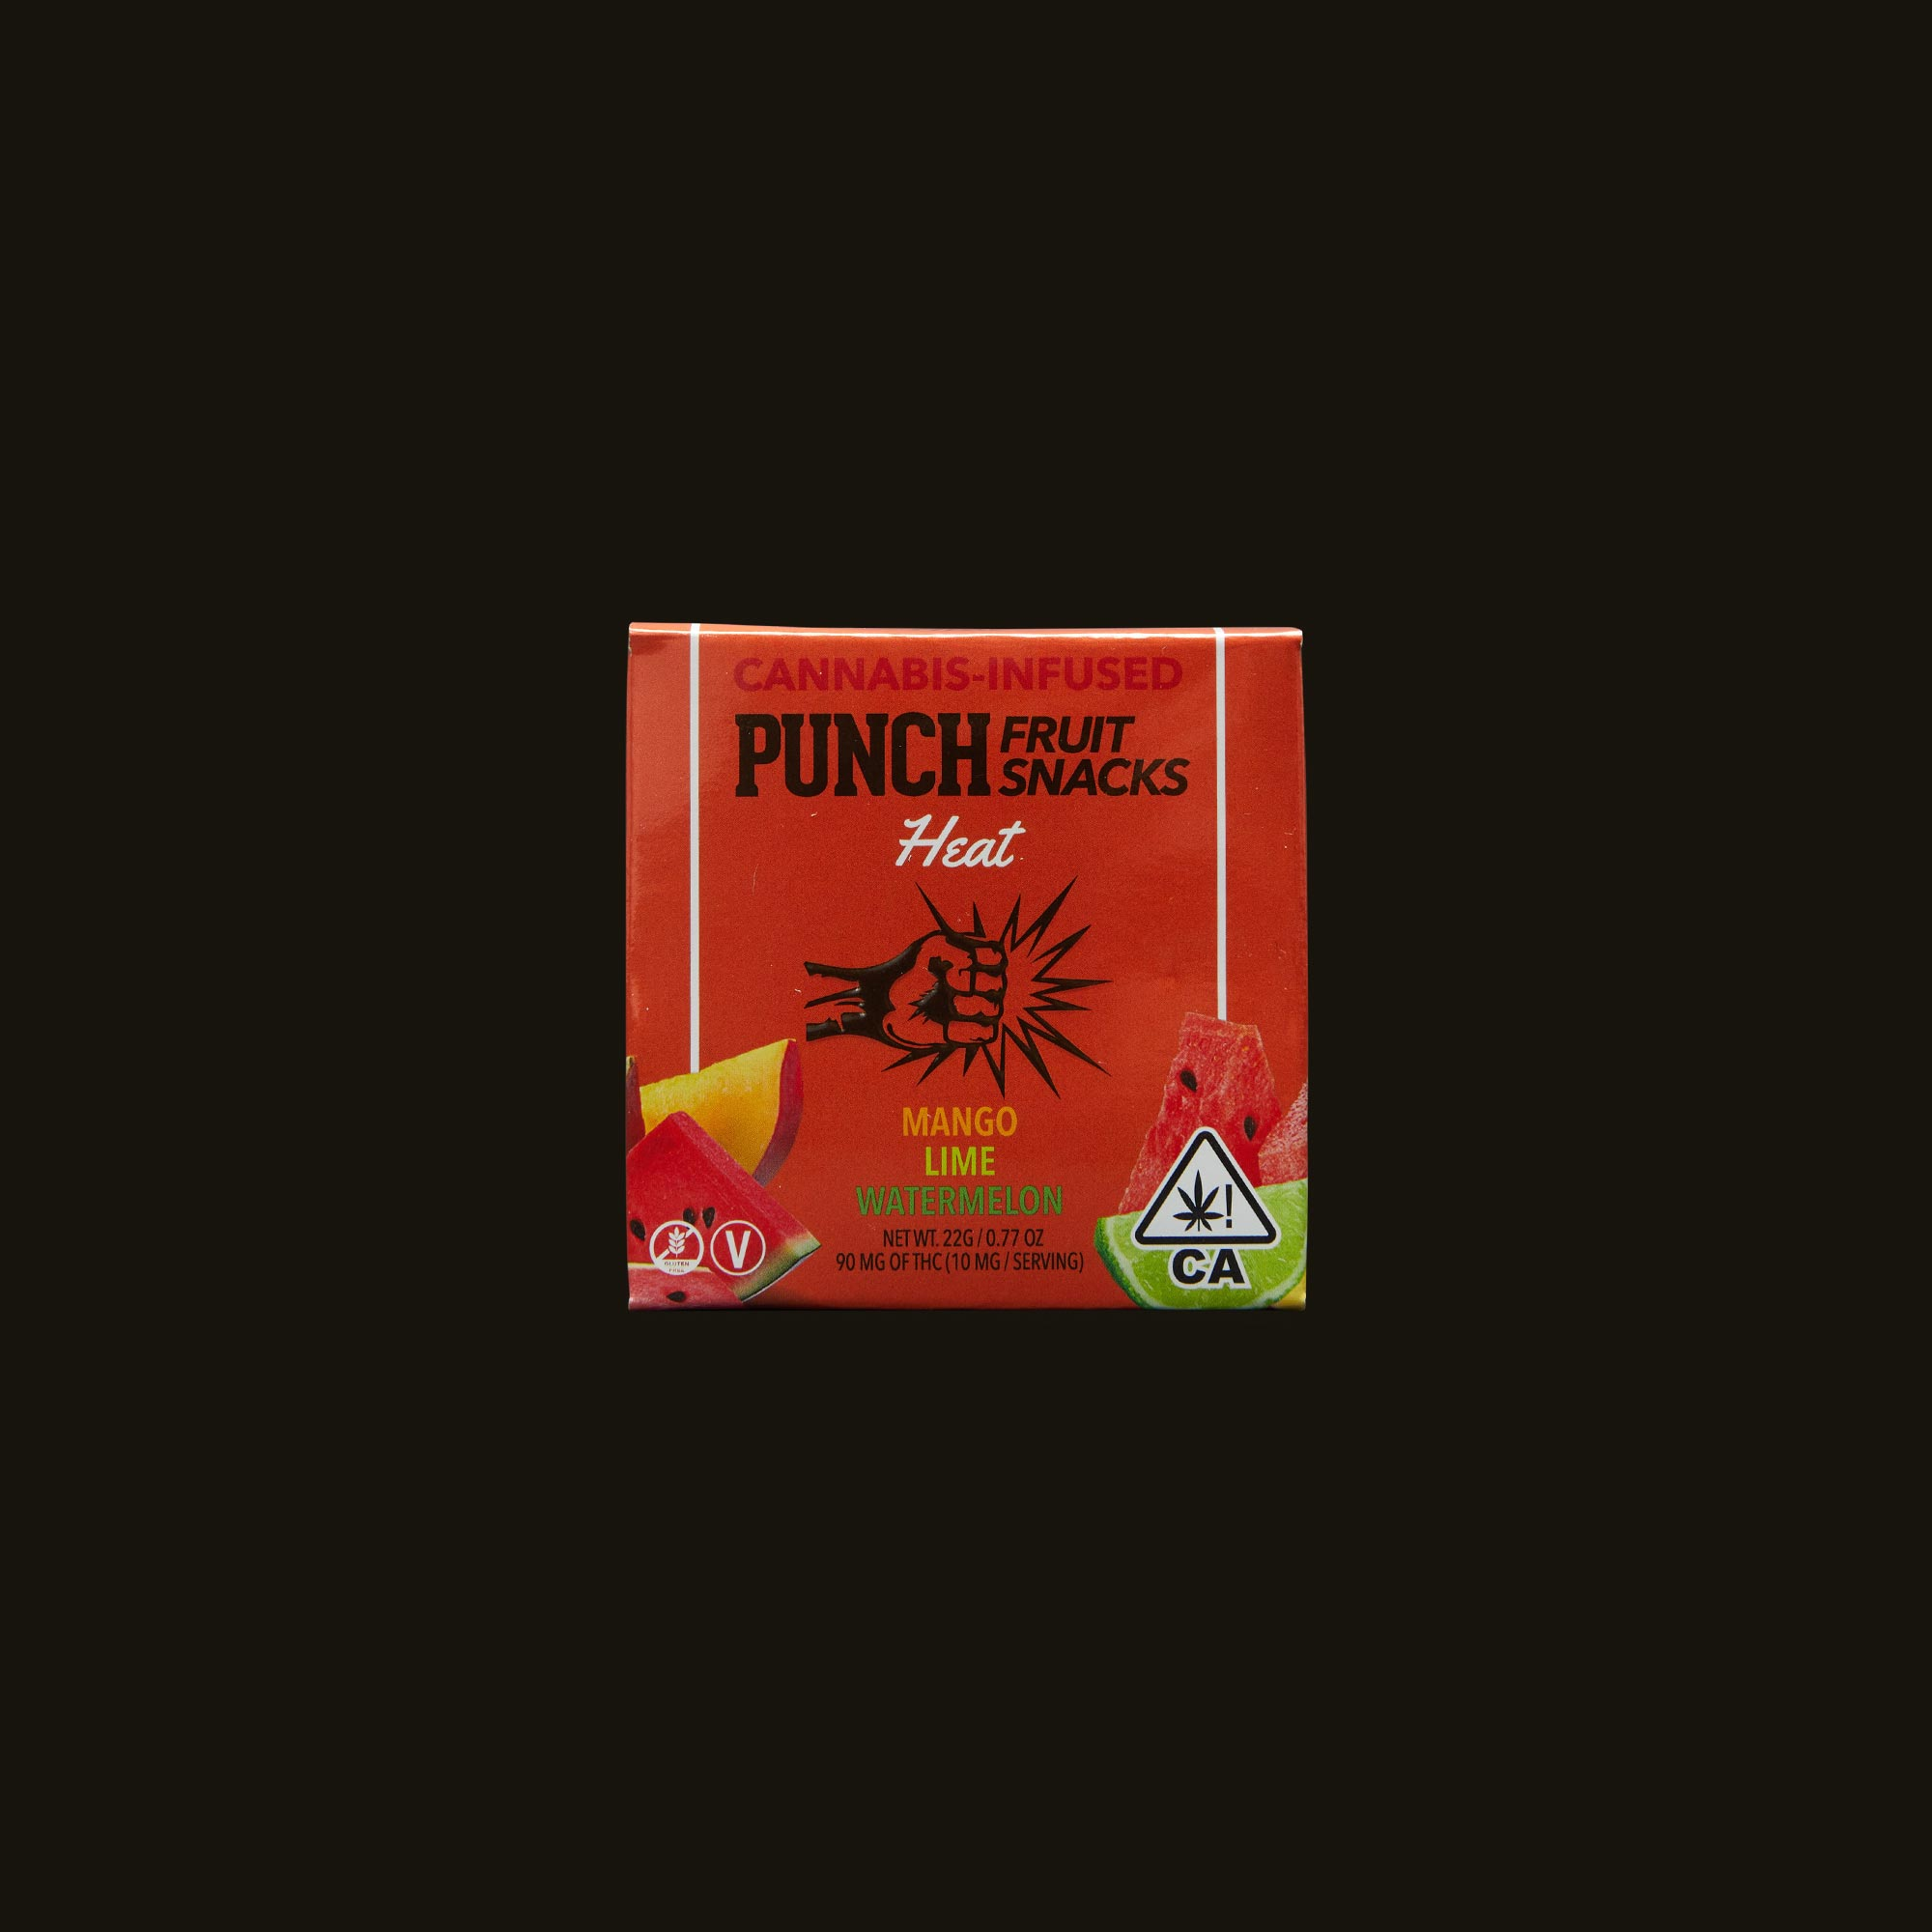 Punch Edibles Punch Fruit Snacks Heat Front Packaging